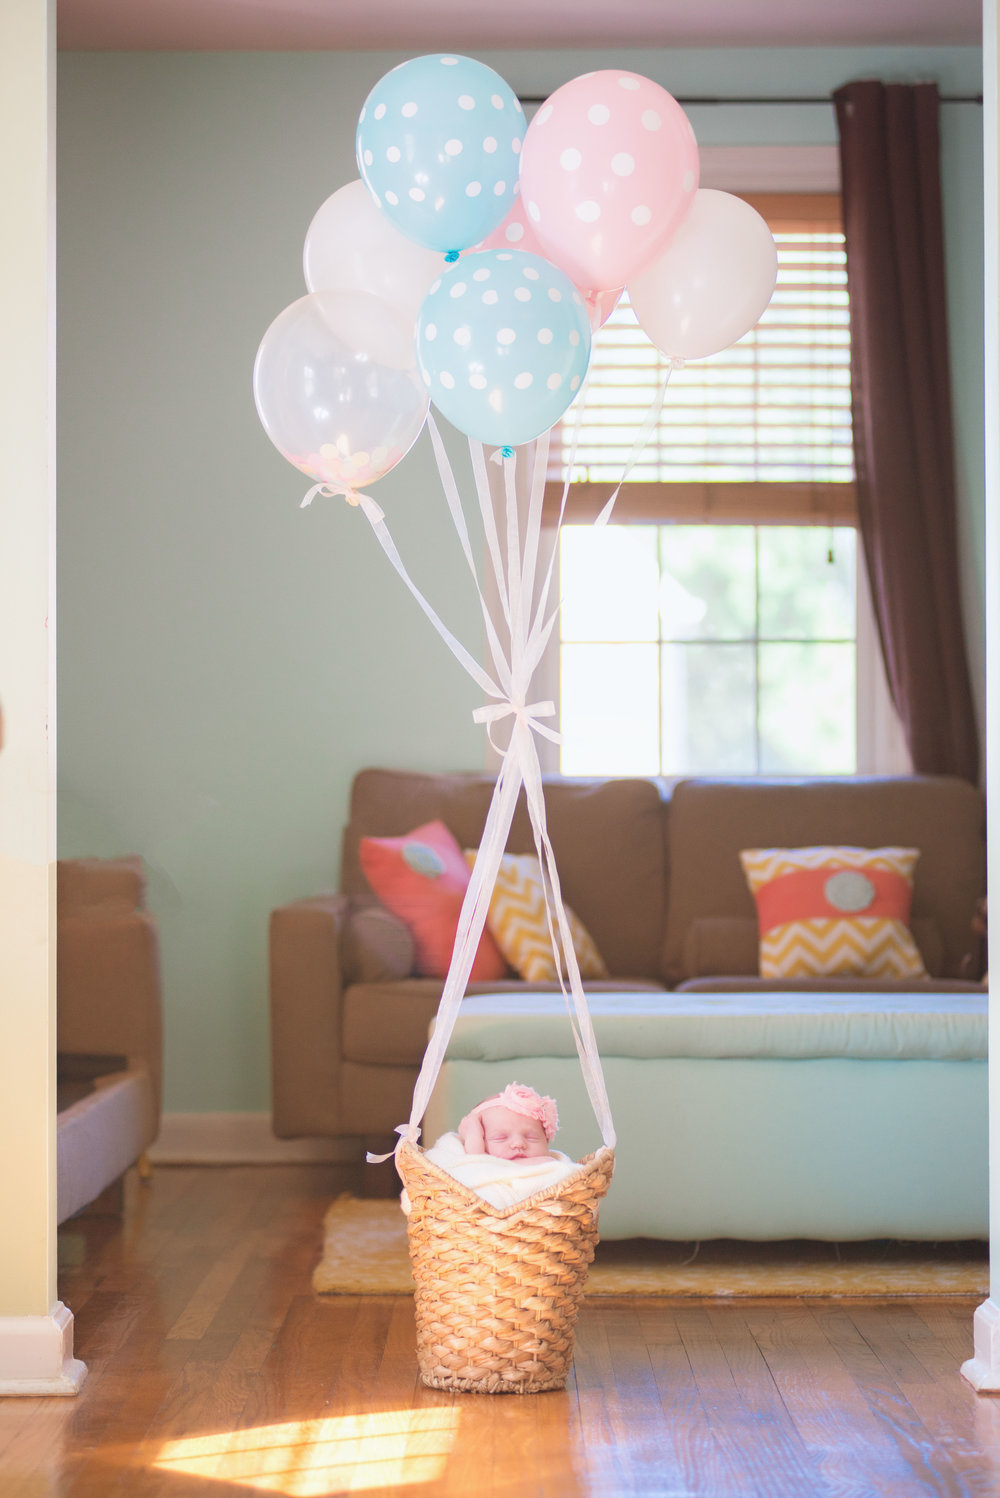 MATERNITY + NEWBORN PHOTOS | Oh The Places You'll Go! -- Hot Air Balloon Themed Maternity + Newborn Session